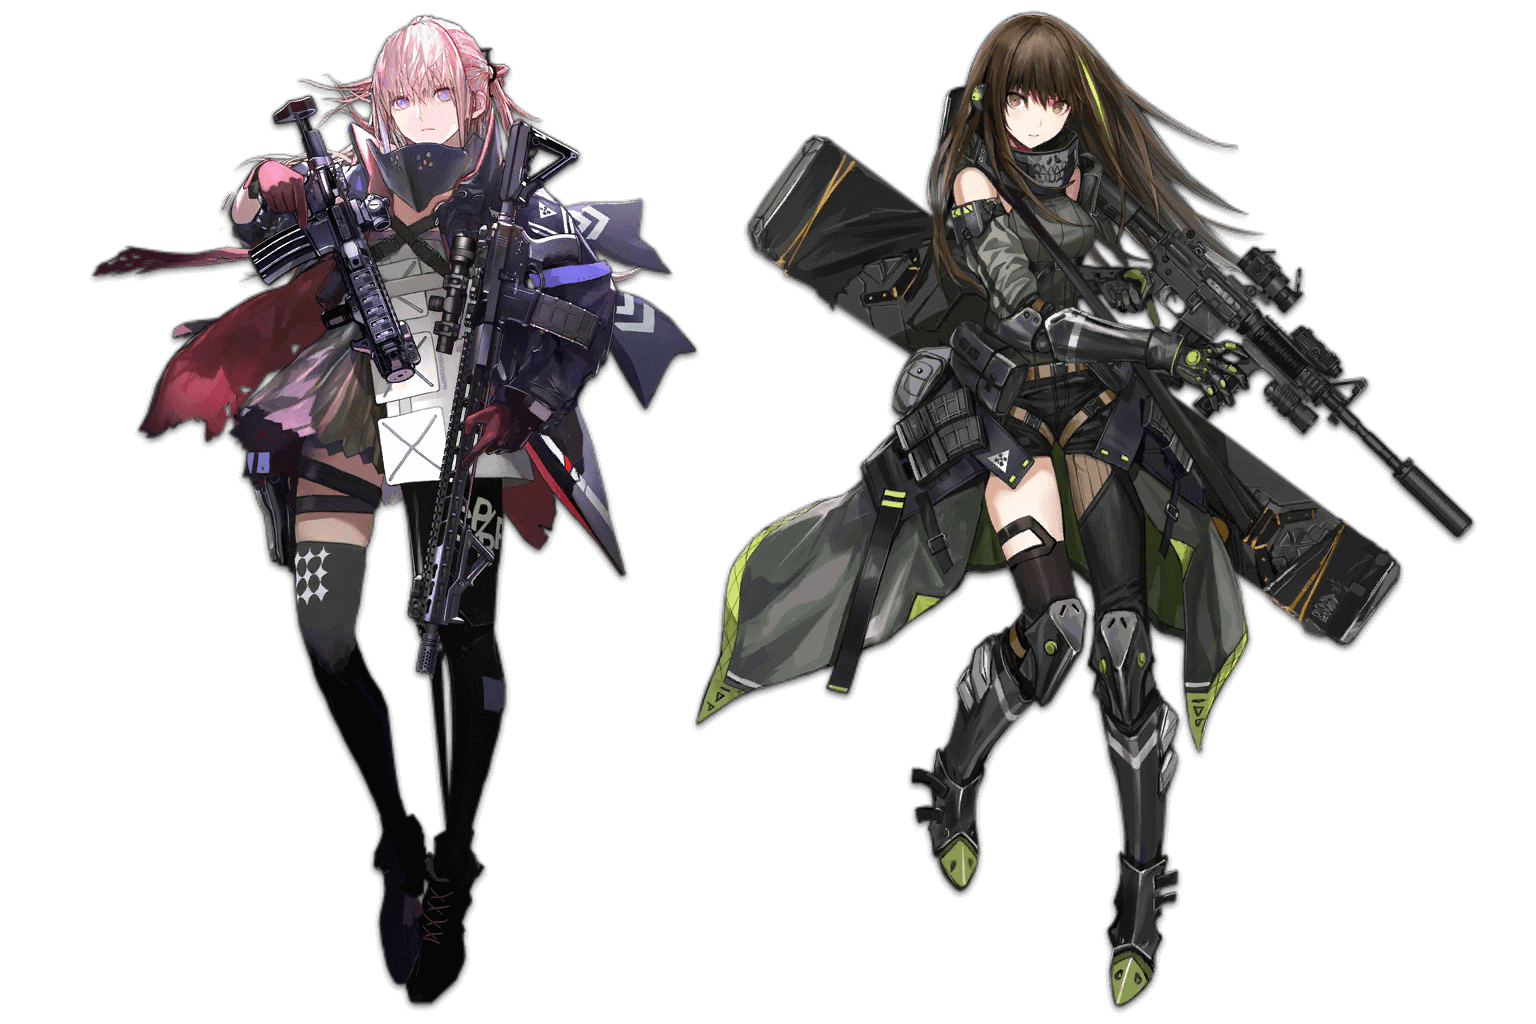 Neural Upgrade MOD 3 Art for AR-15 and M4A1